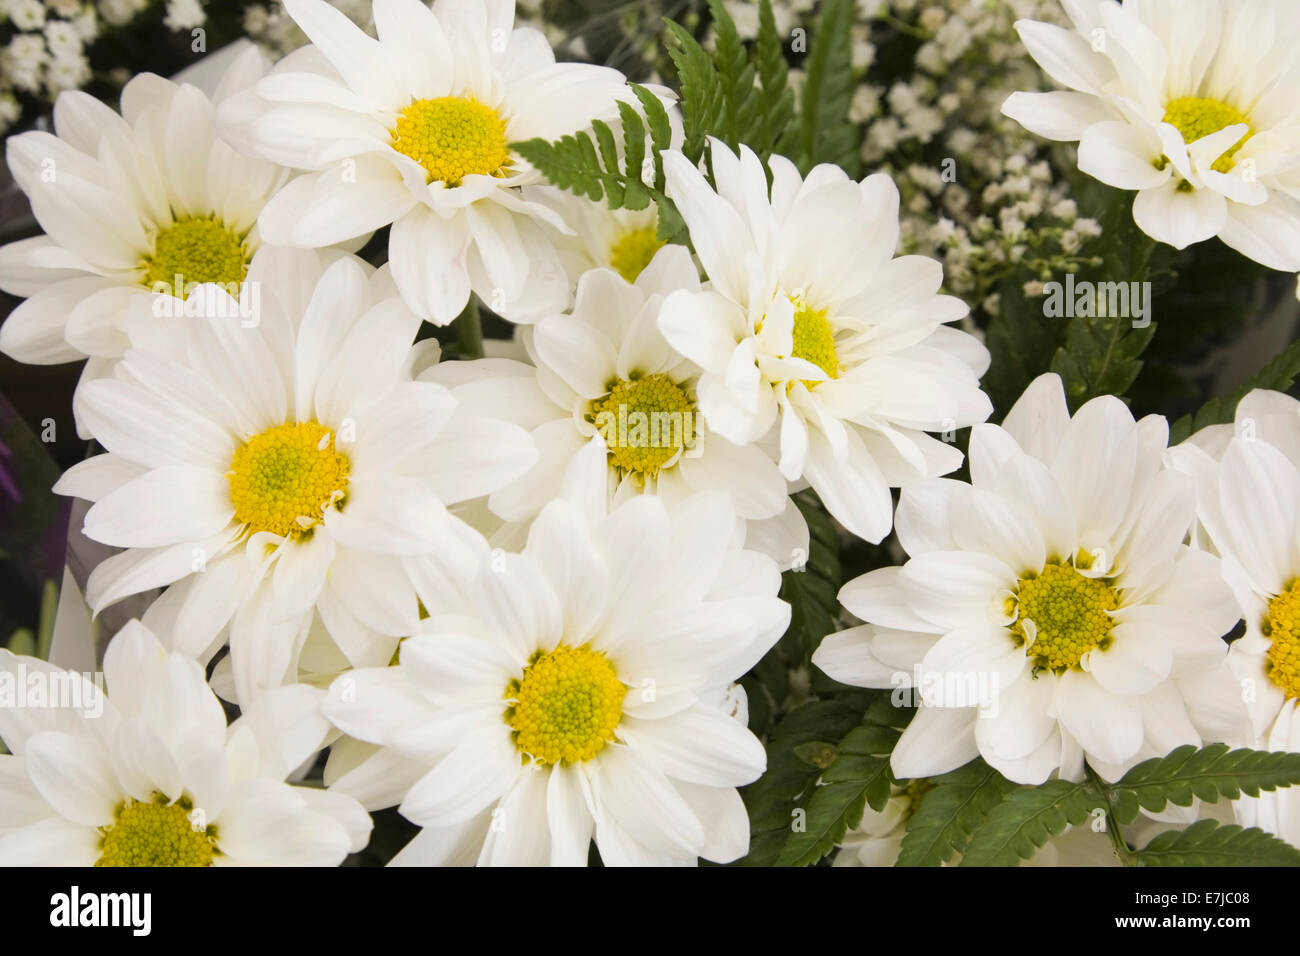 Chrysanthemum flowers stock photos chrysanthemum flowers stock close up of freshly cut chrysanthemum flowers for sale at an outdoor market byward izmirmasajfo Images